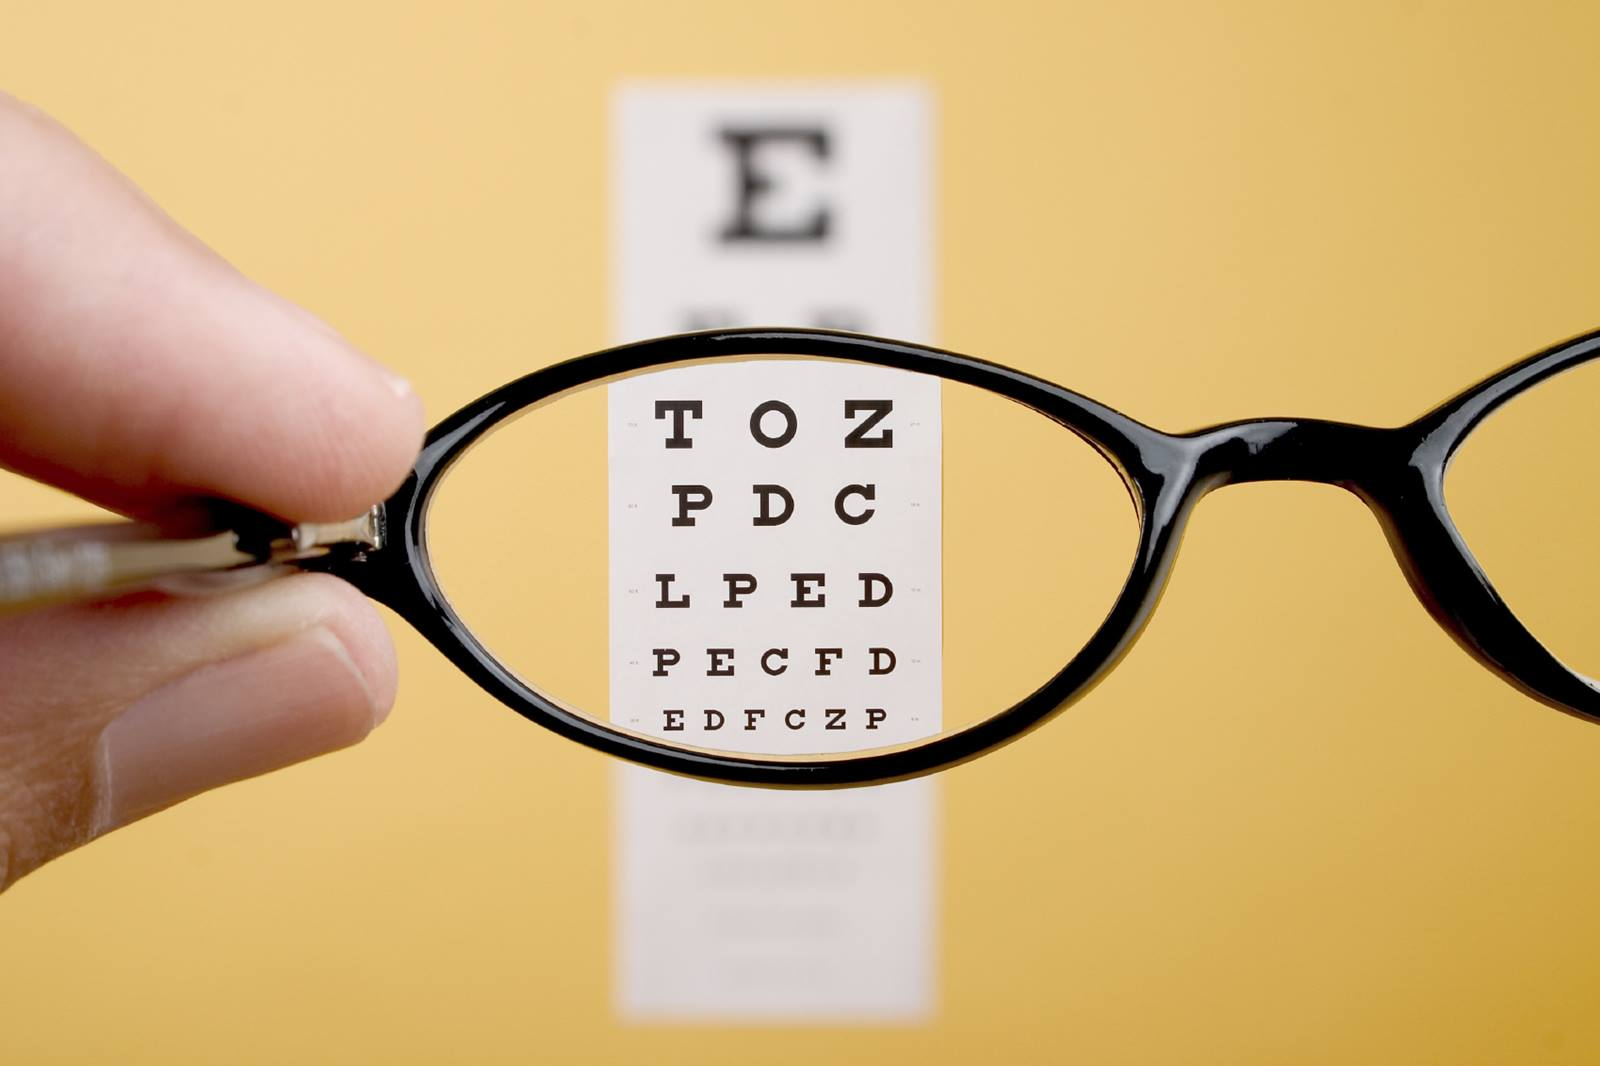 A pair of eyeglasses being held up in front of an eye chart